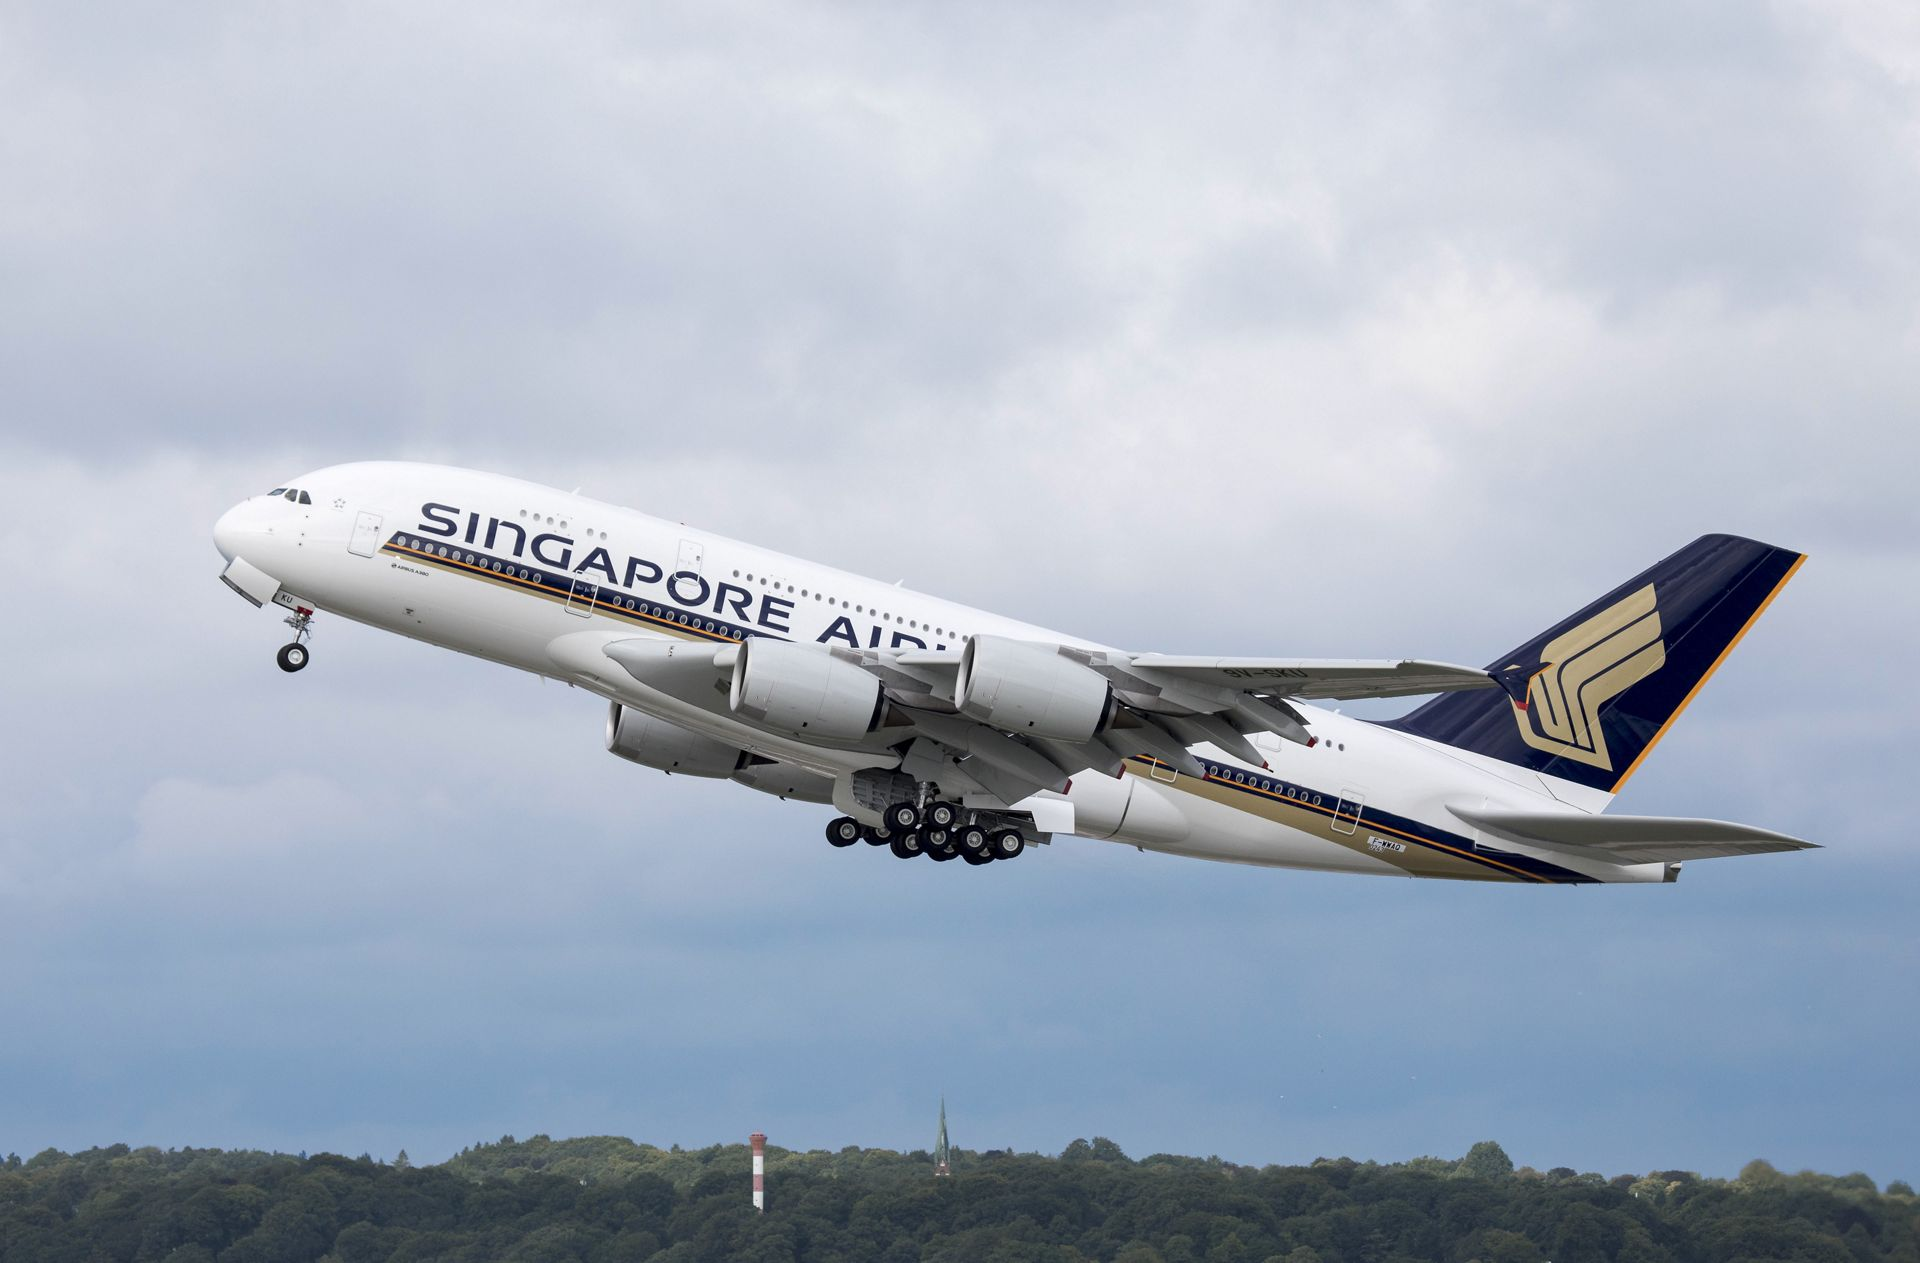 Sleeping Pods New Singapore Airlines A380 Takes To The Skies